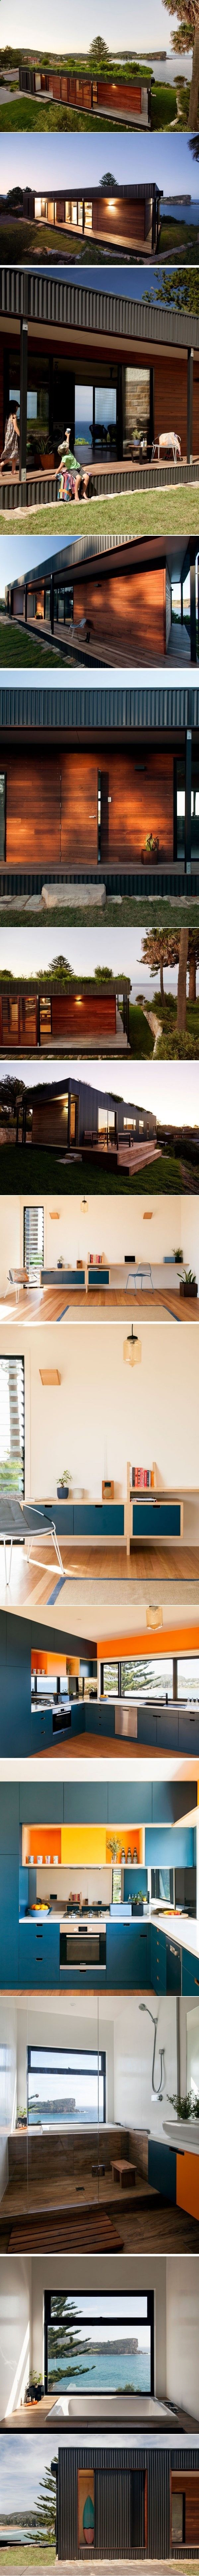 best 25 prefab ideas on pinterest